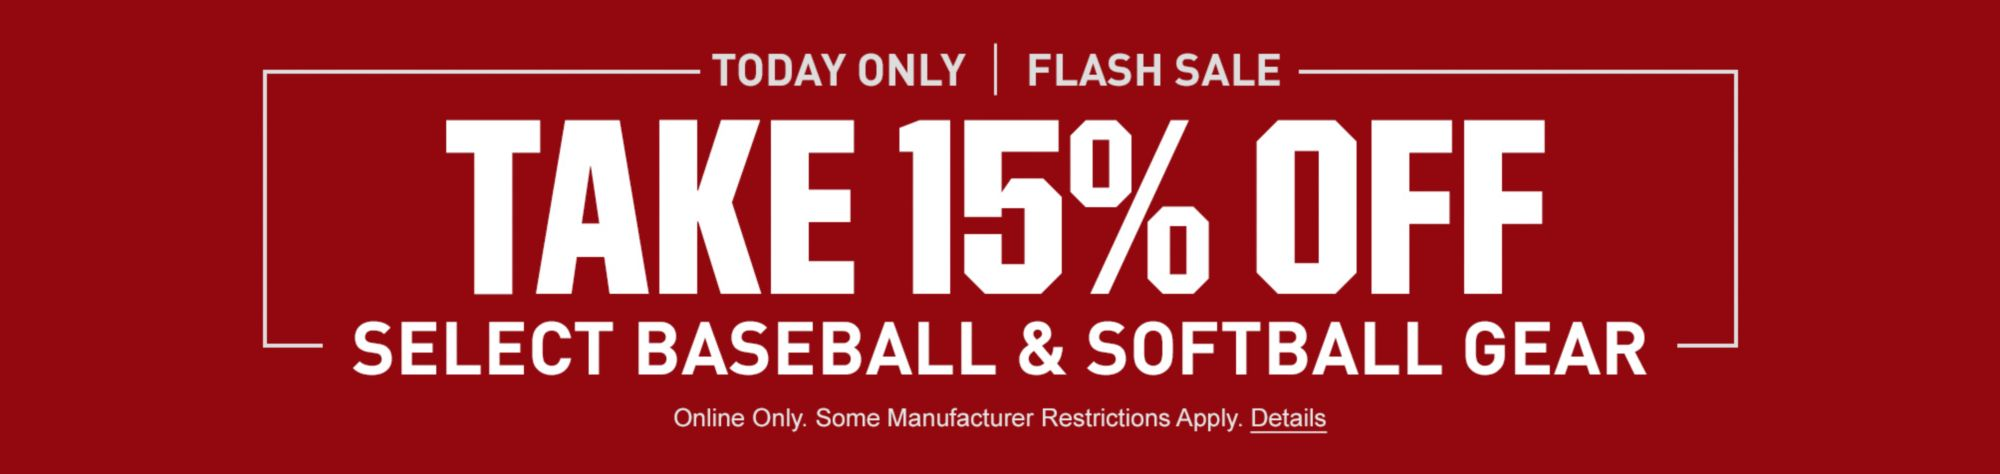 Take 15% Off Select Baseball & Softball Gear - Today Only Flash Sale